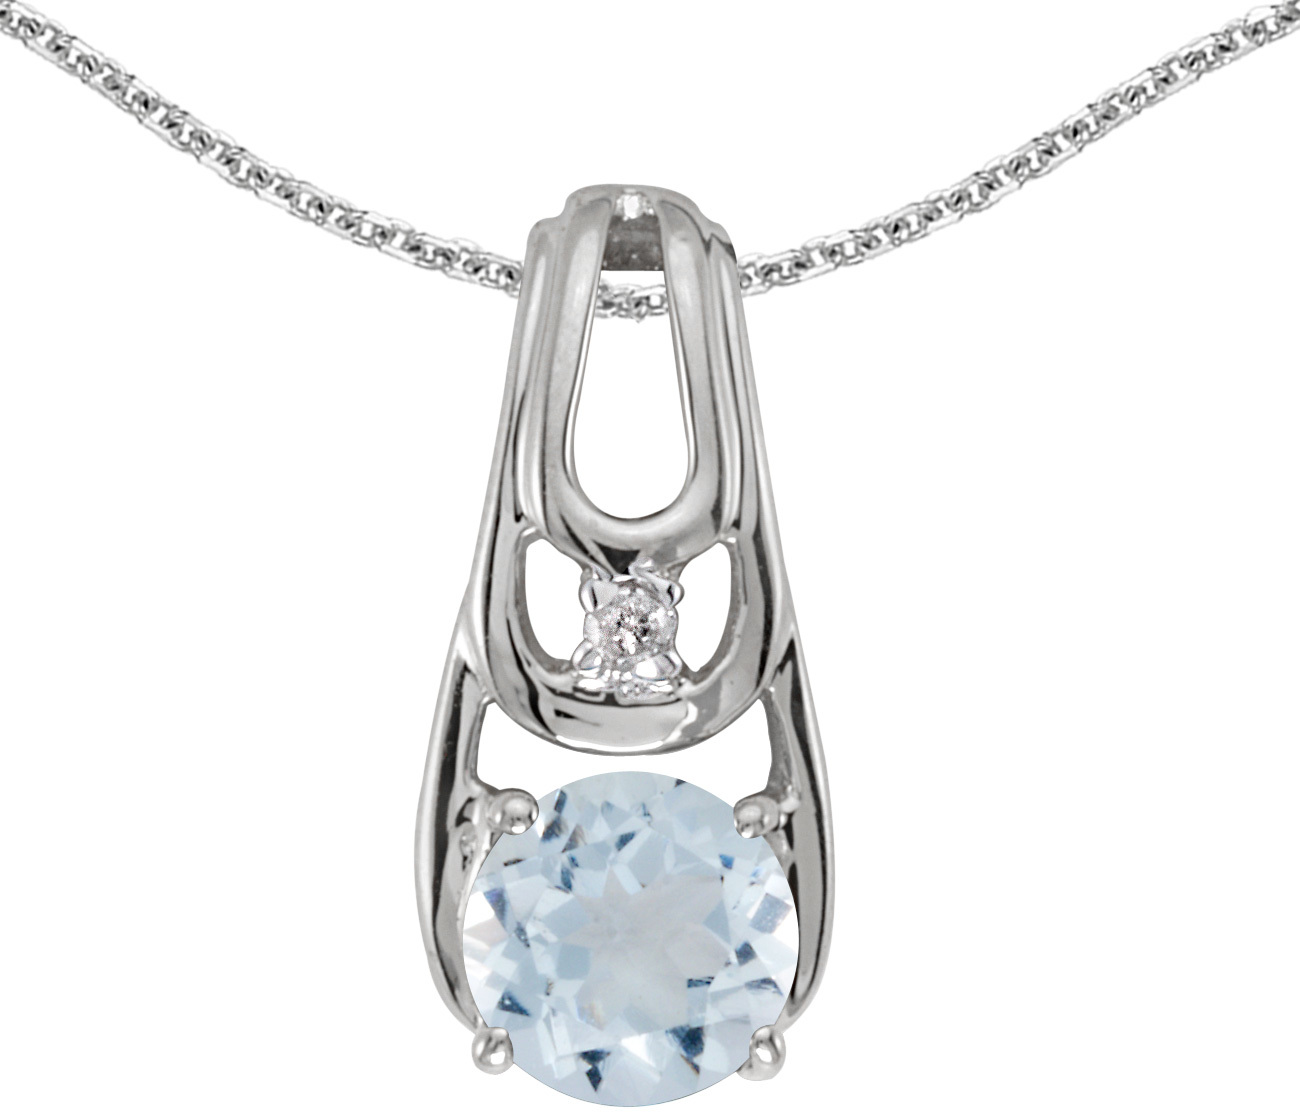 14k White Gold Round Aquamarine And Diamond Pendant (Chain NOT included)